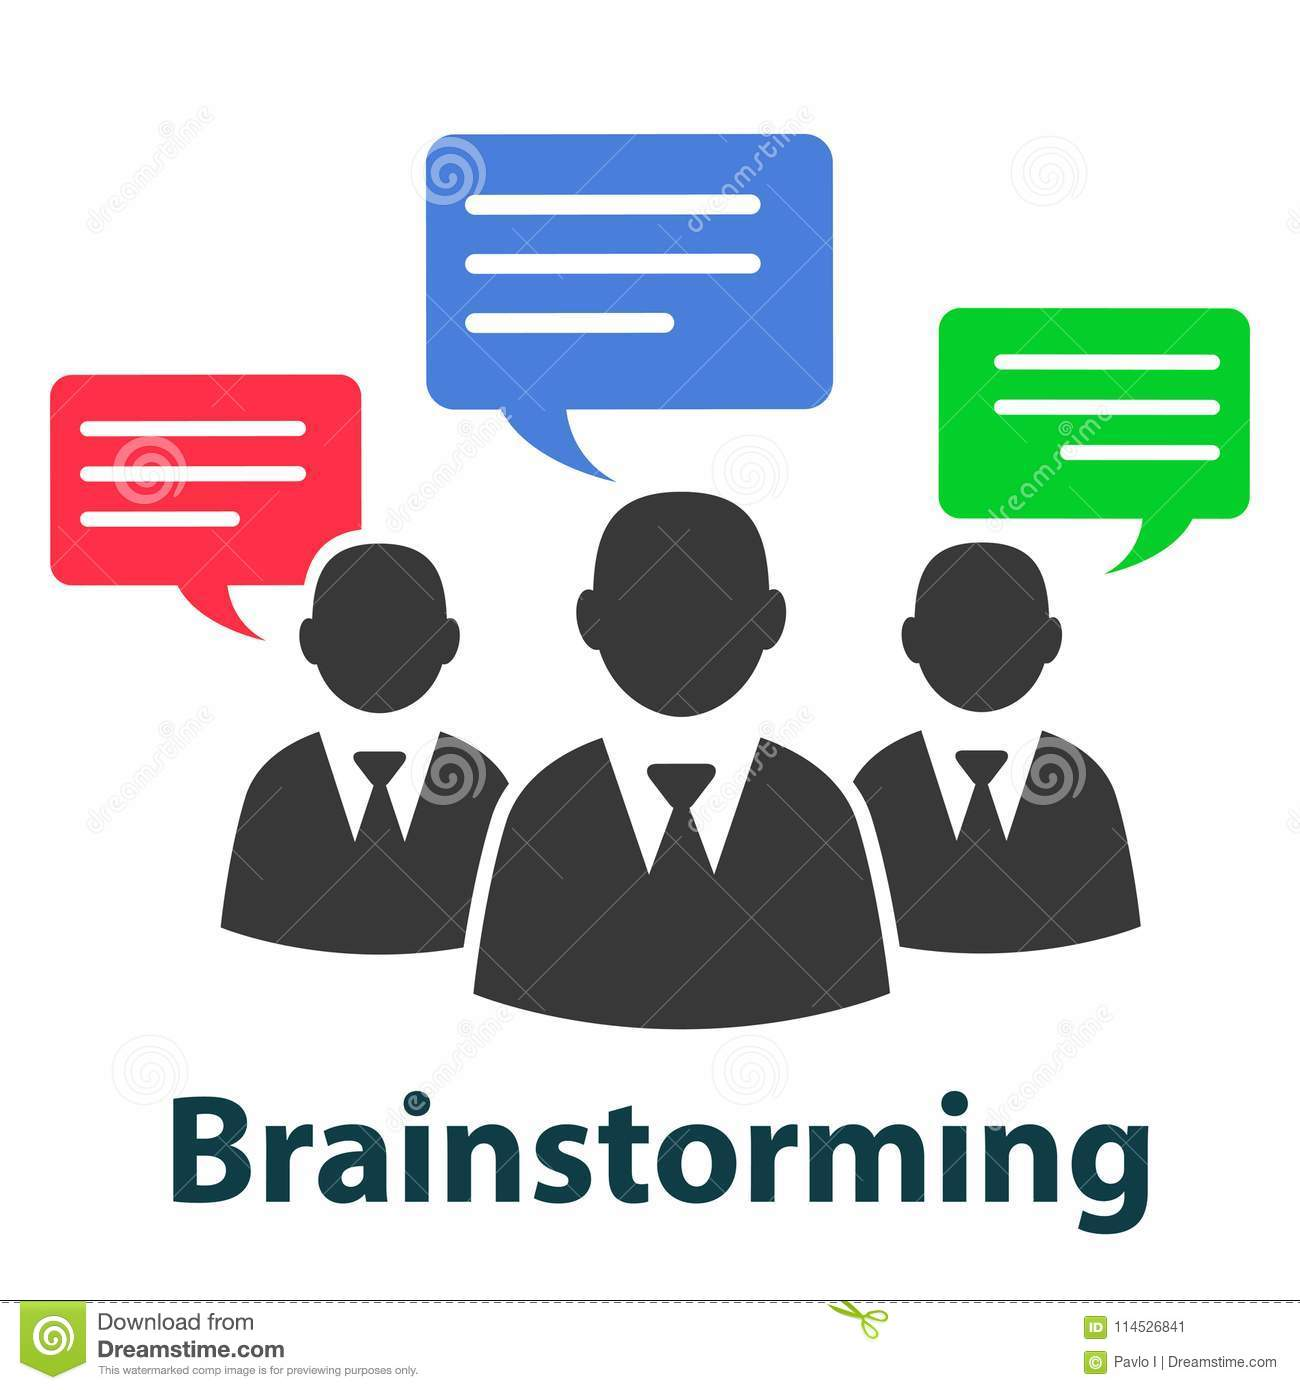 Group discuss, brainstorming concept - vector